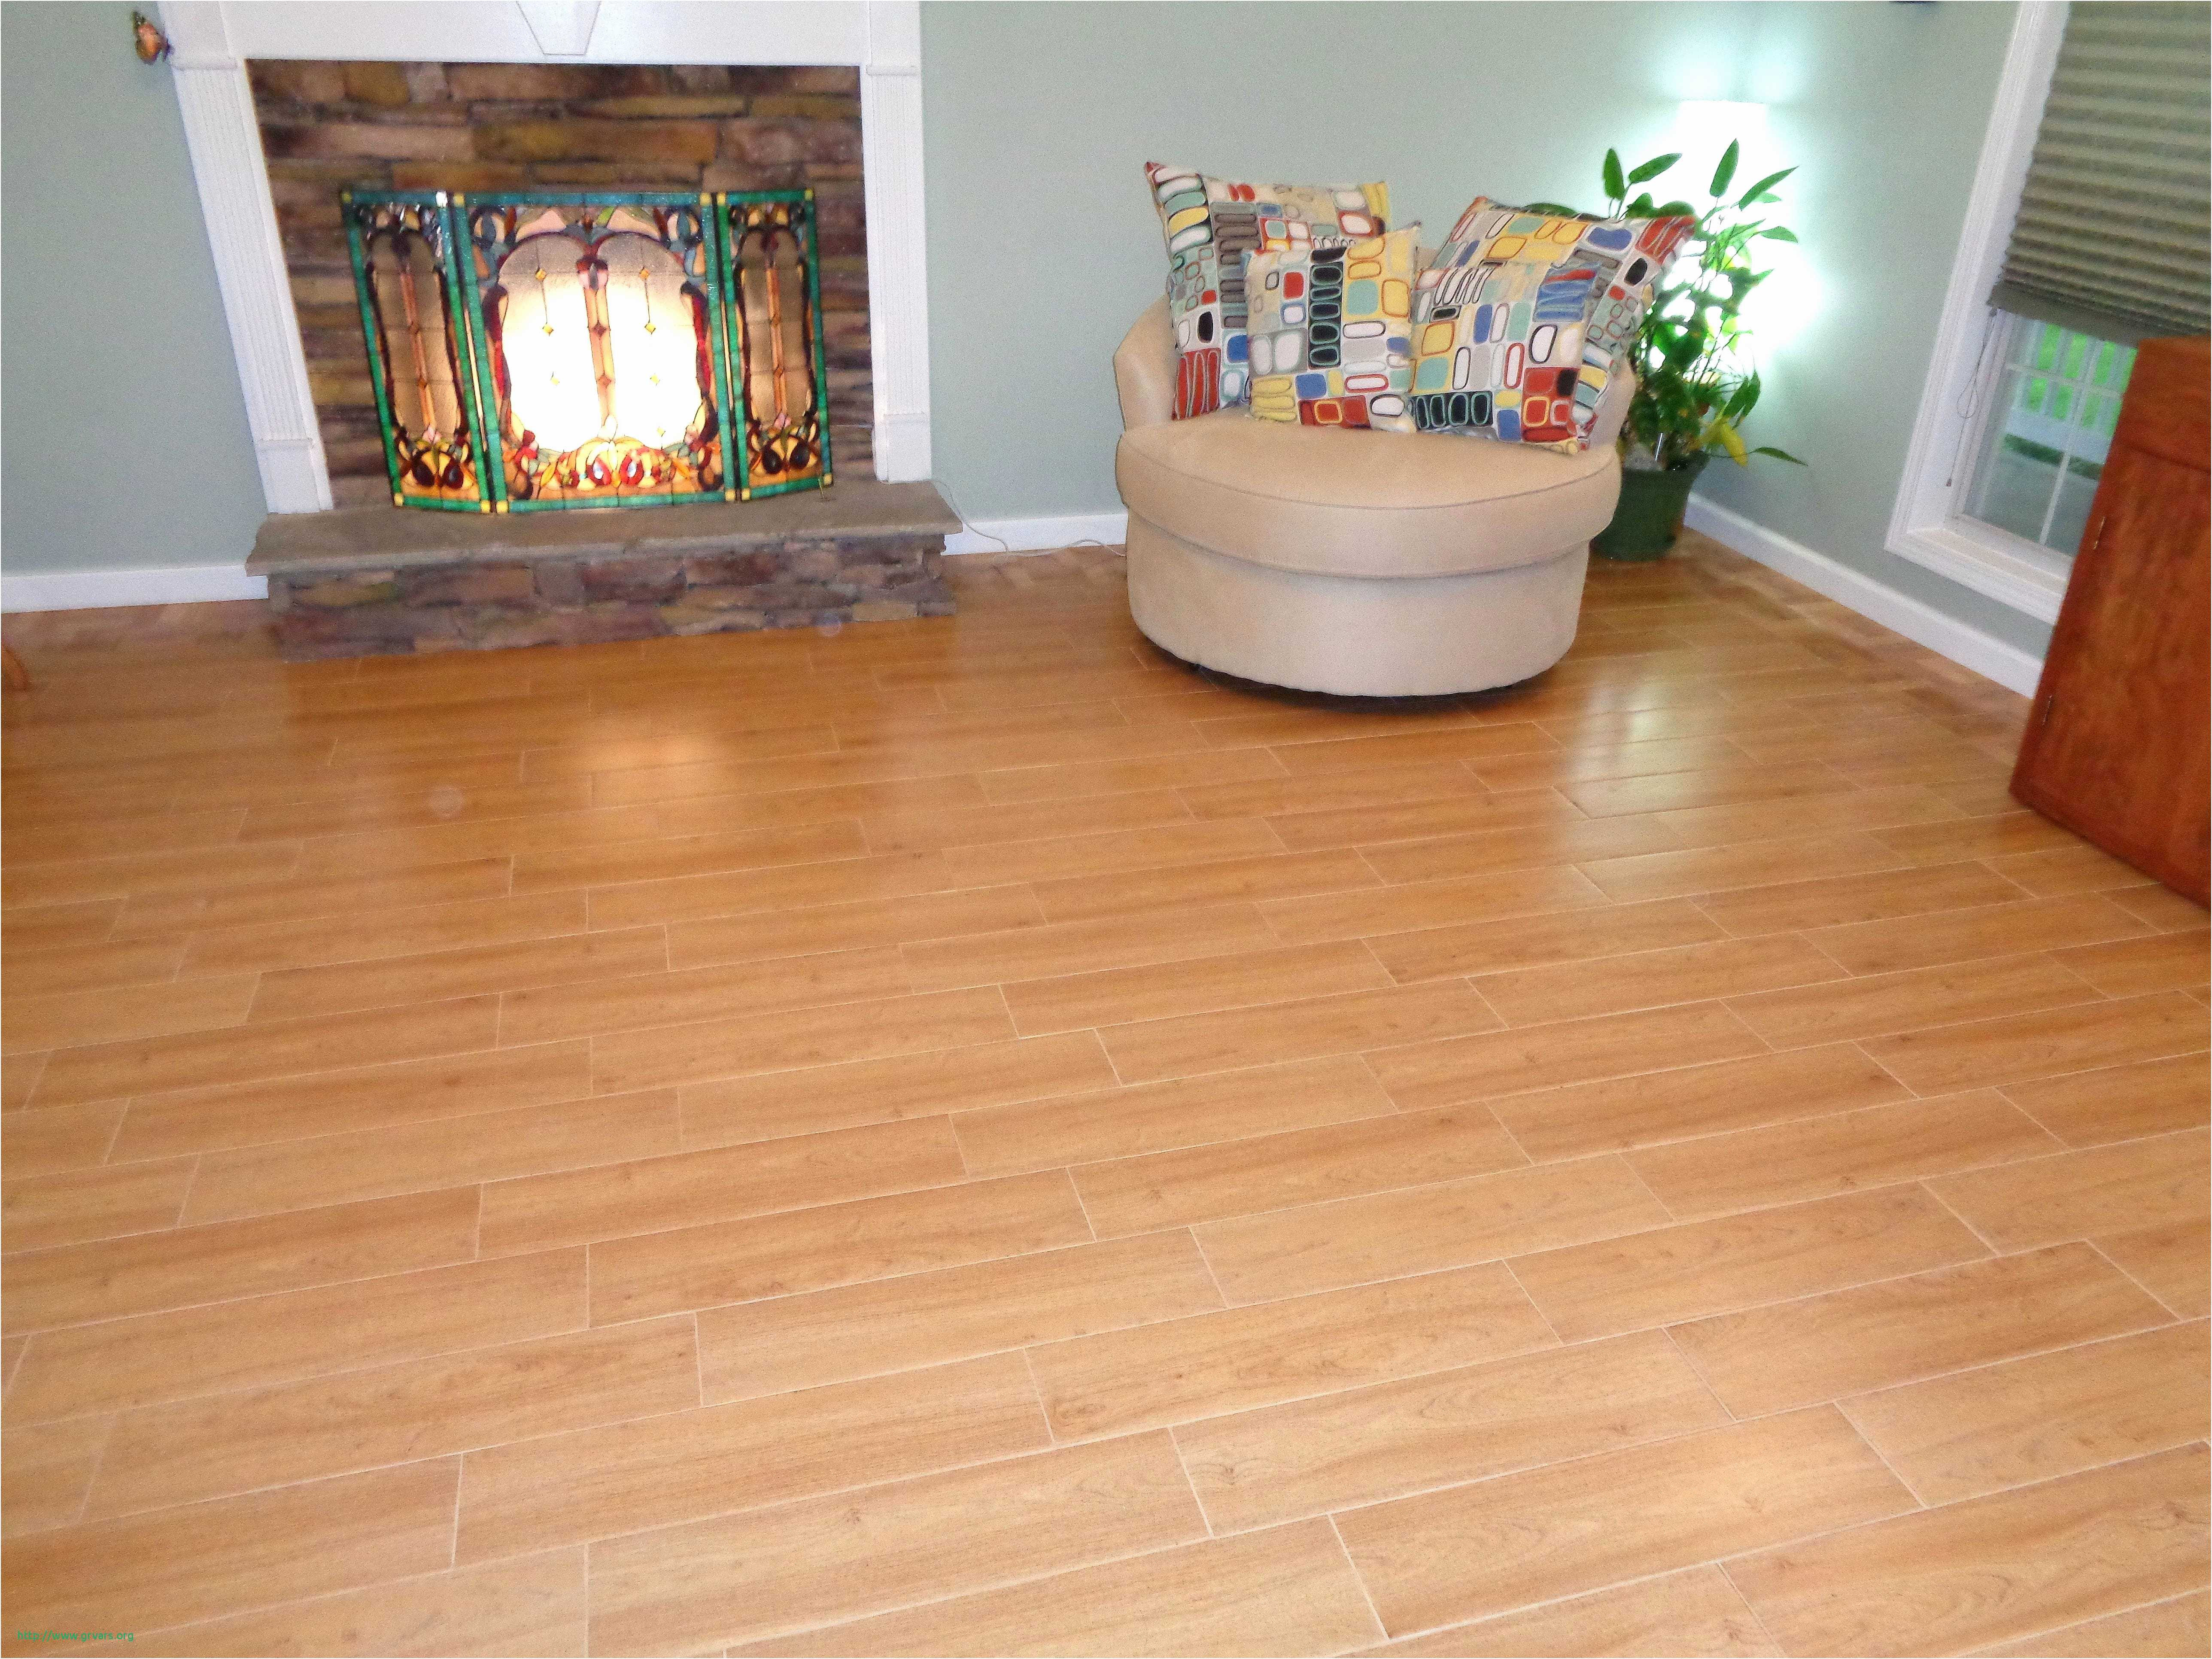 hardwood flooring prices of 20 impressionnant cheapest place to buy hardwood flooring ideas blog throughout cheapest place to buy hardwood flooring inspirant laminated wooden flooring prices guide to solid hardwood floors